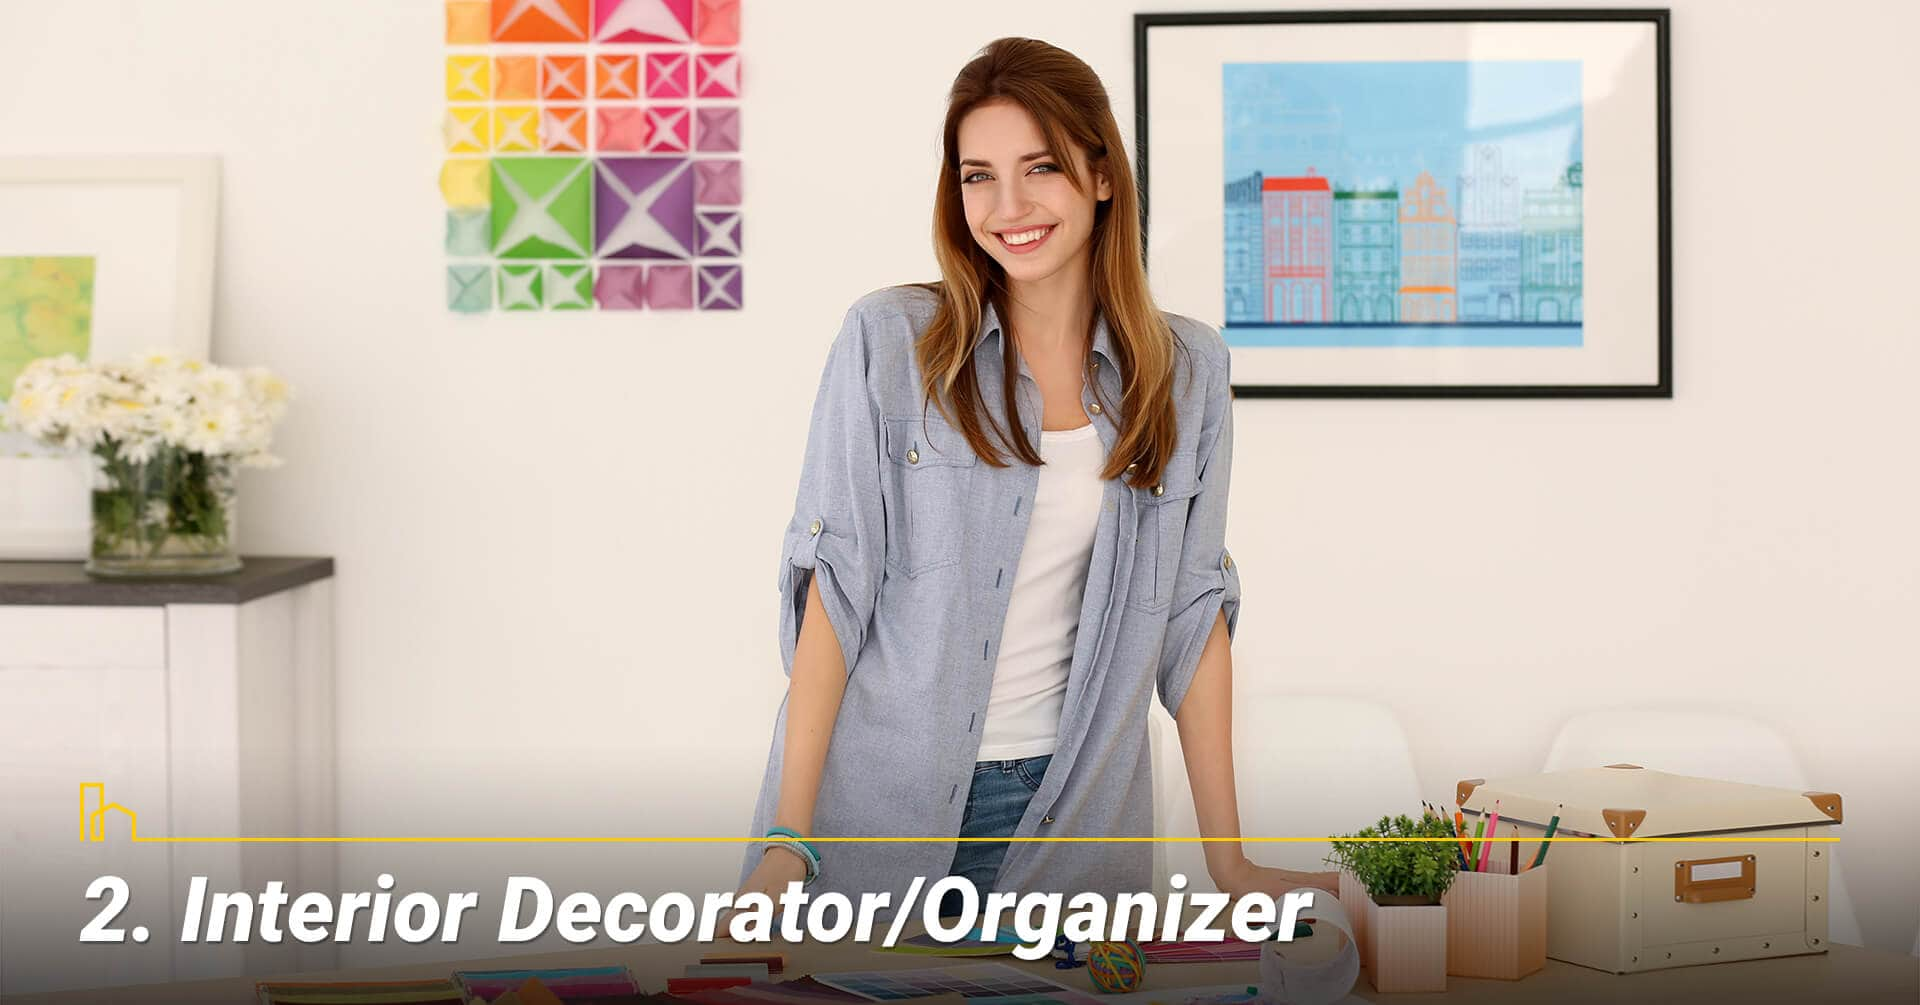 Interior Decorator/Organizer